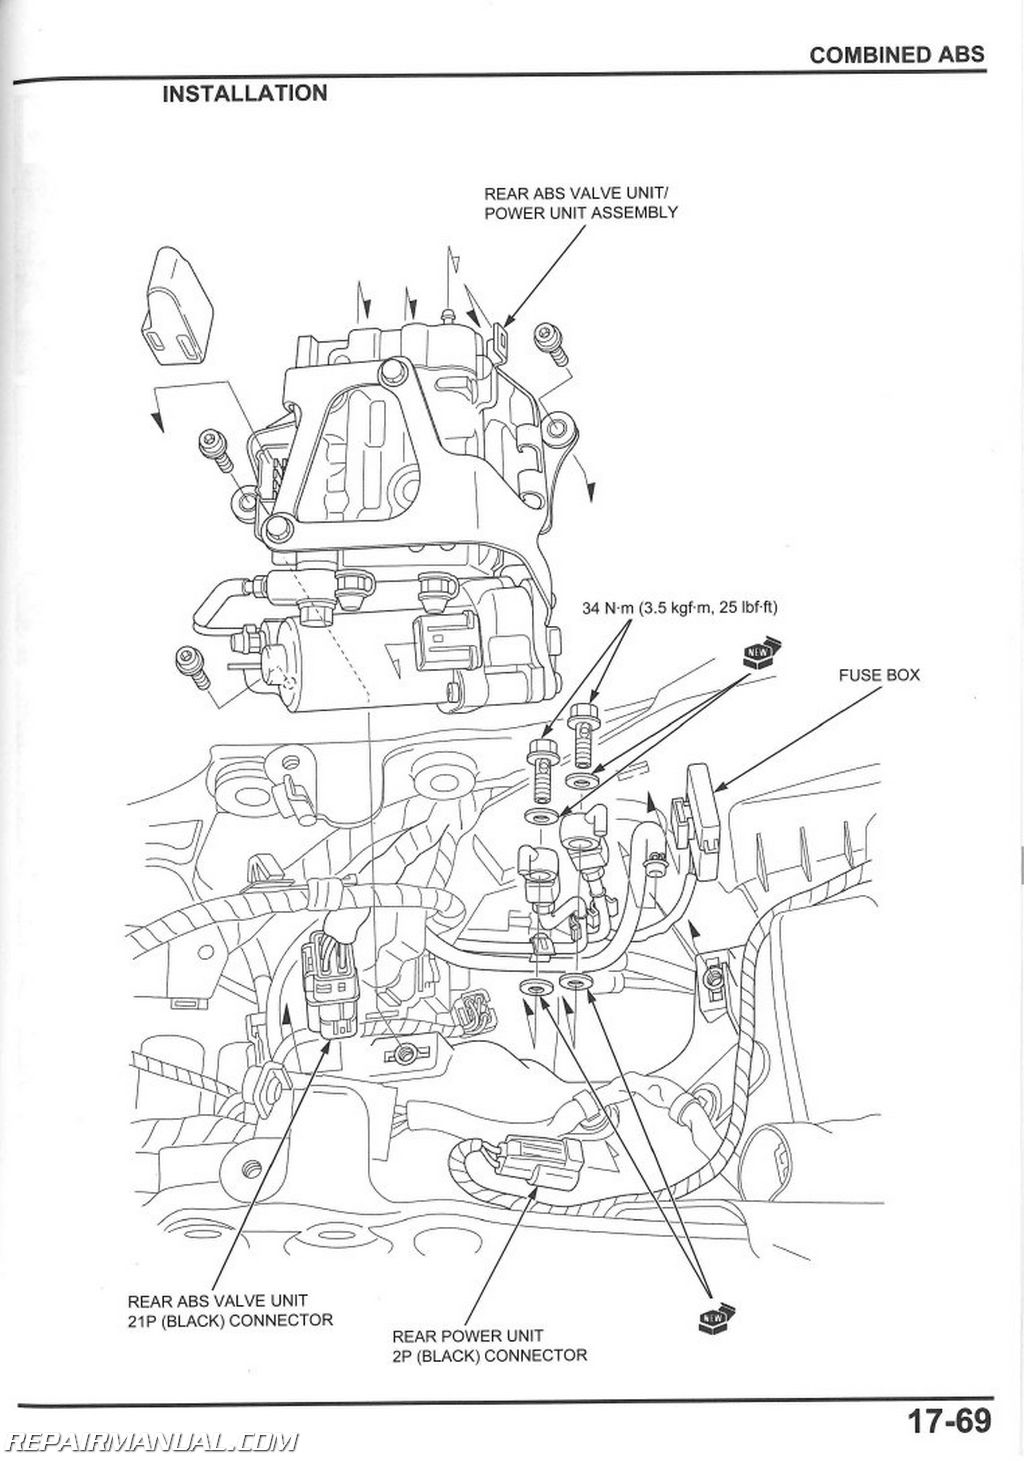 2005 cbr1000rr wiring diagram